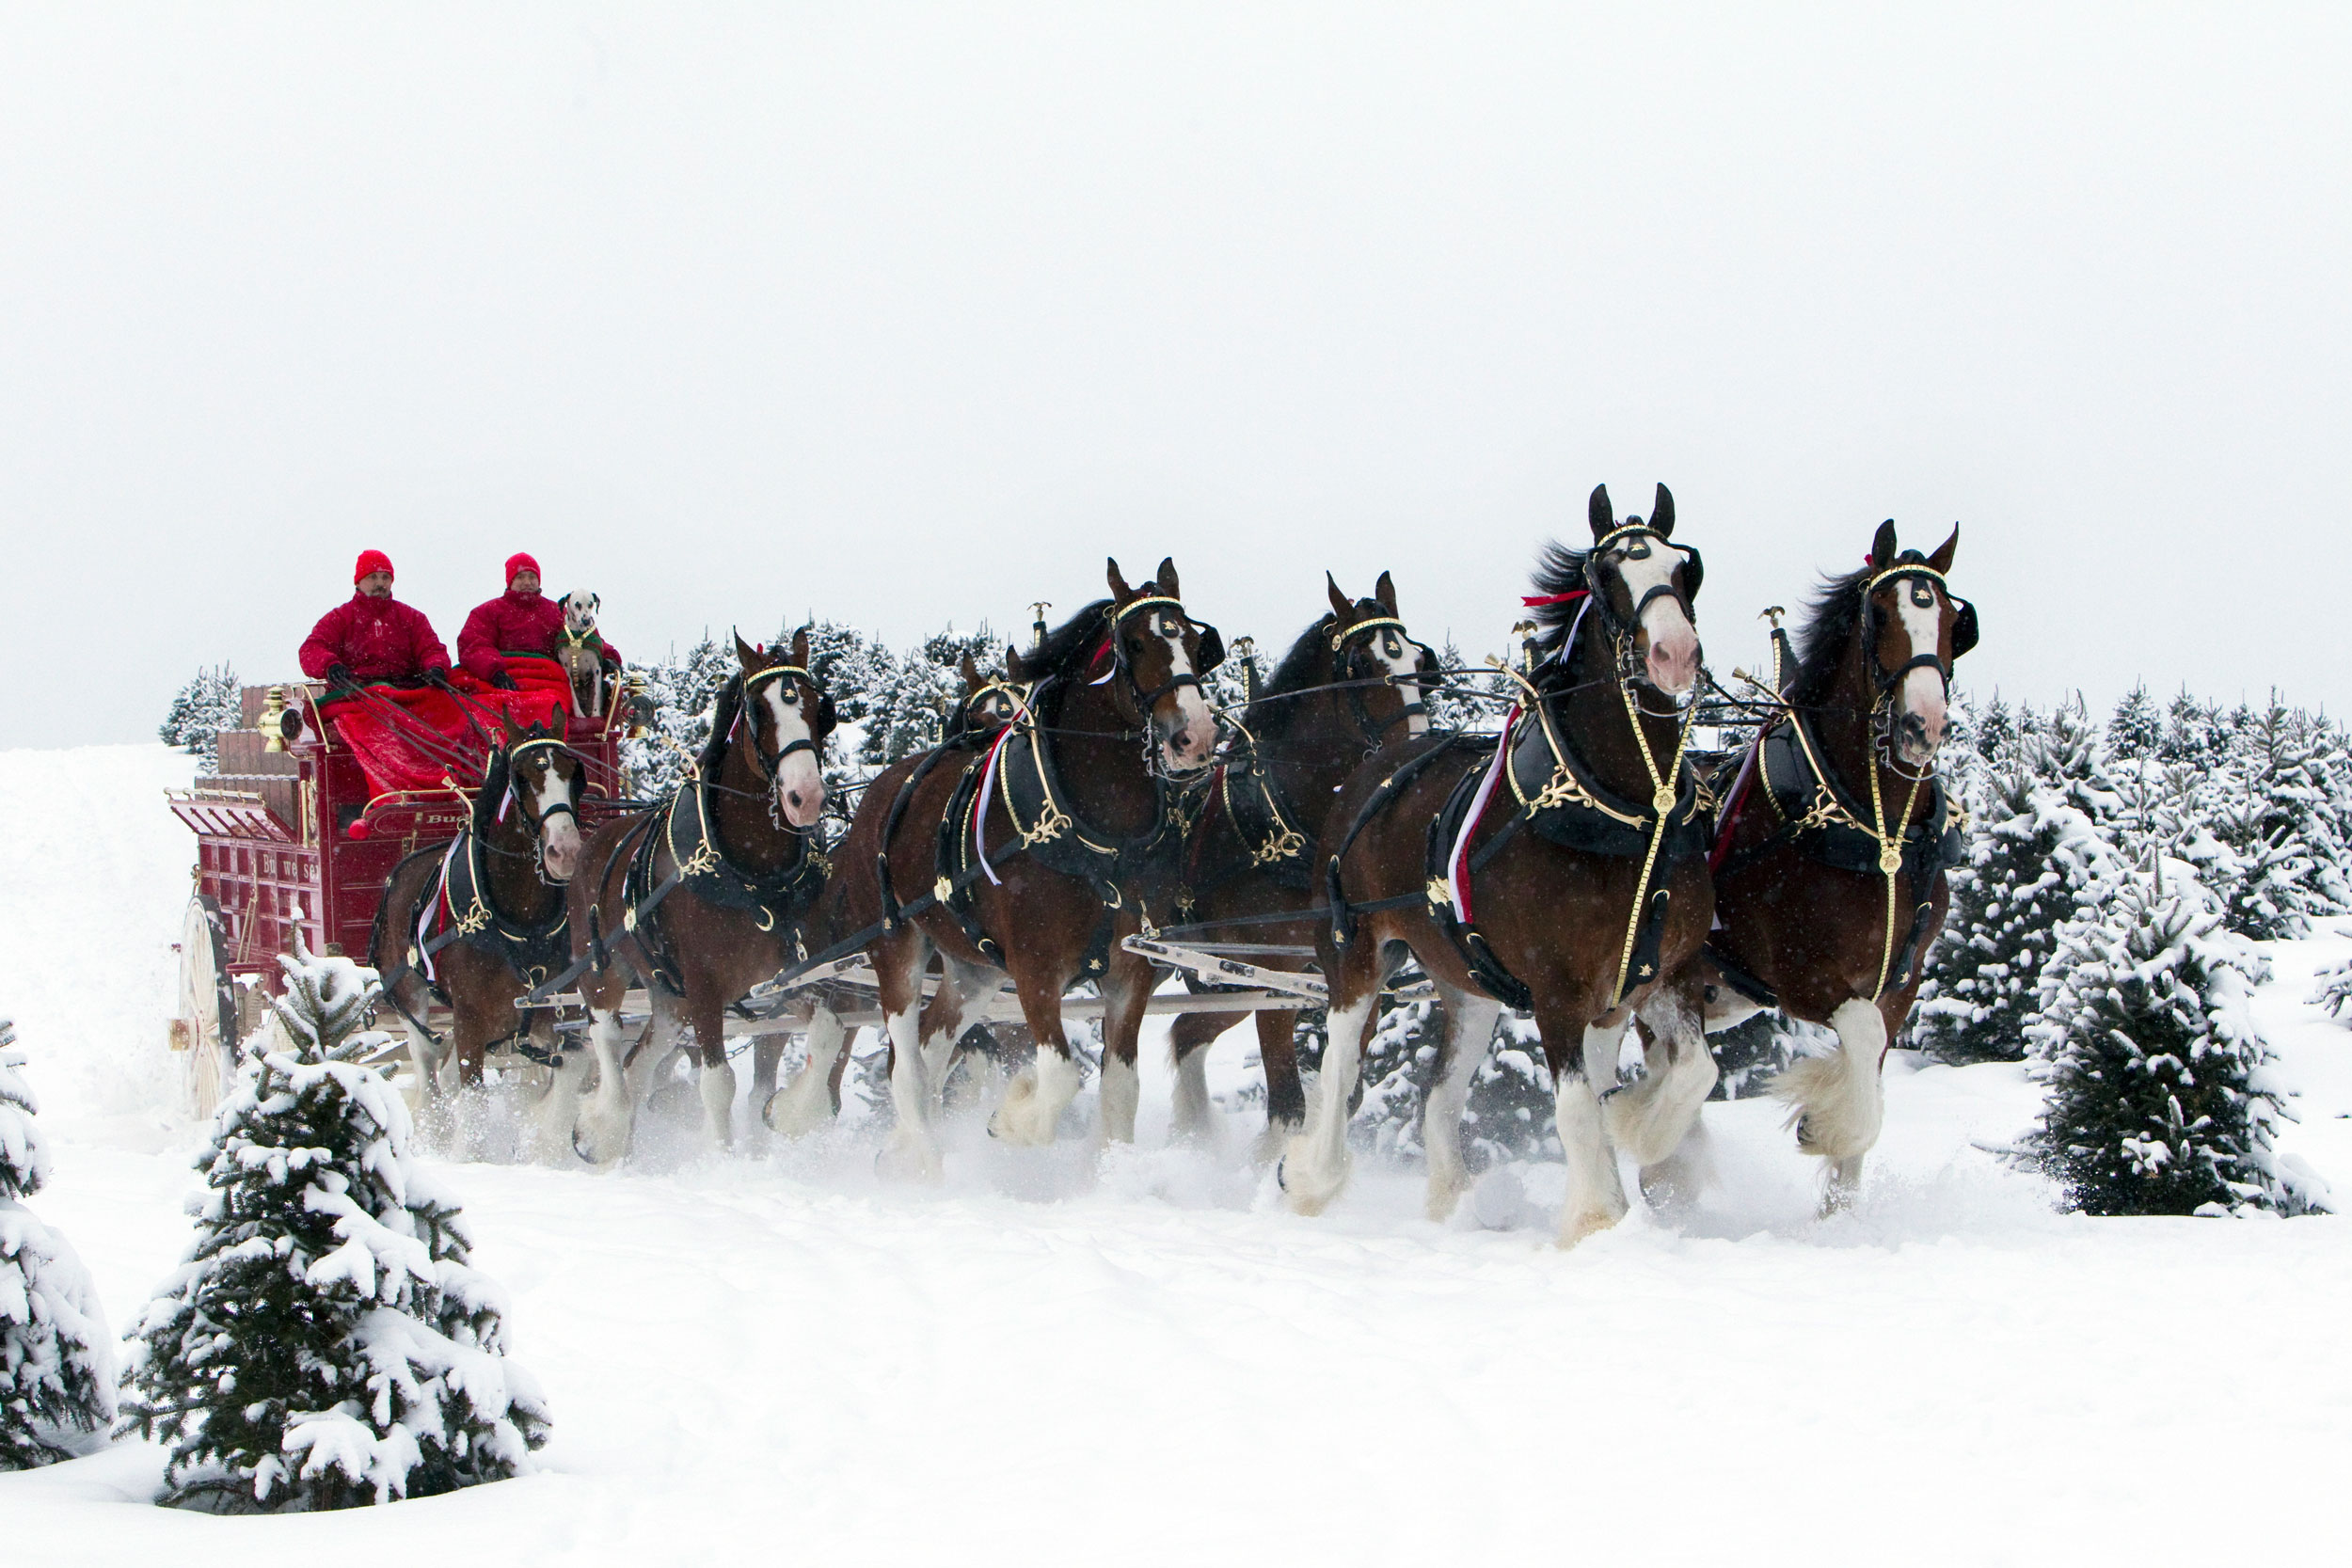 budweiser-clydesdales-in-snow